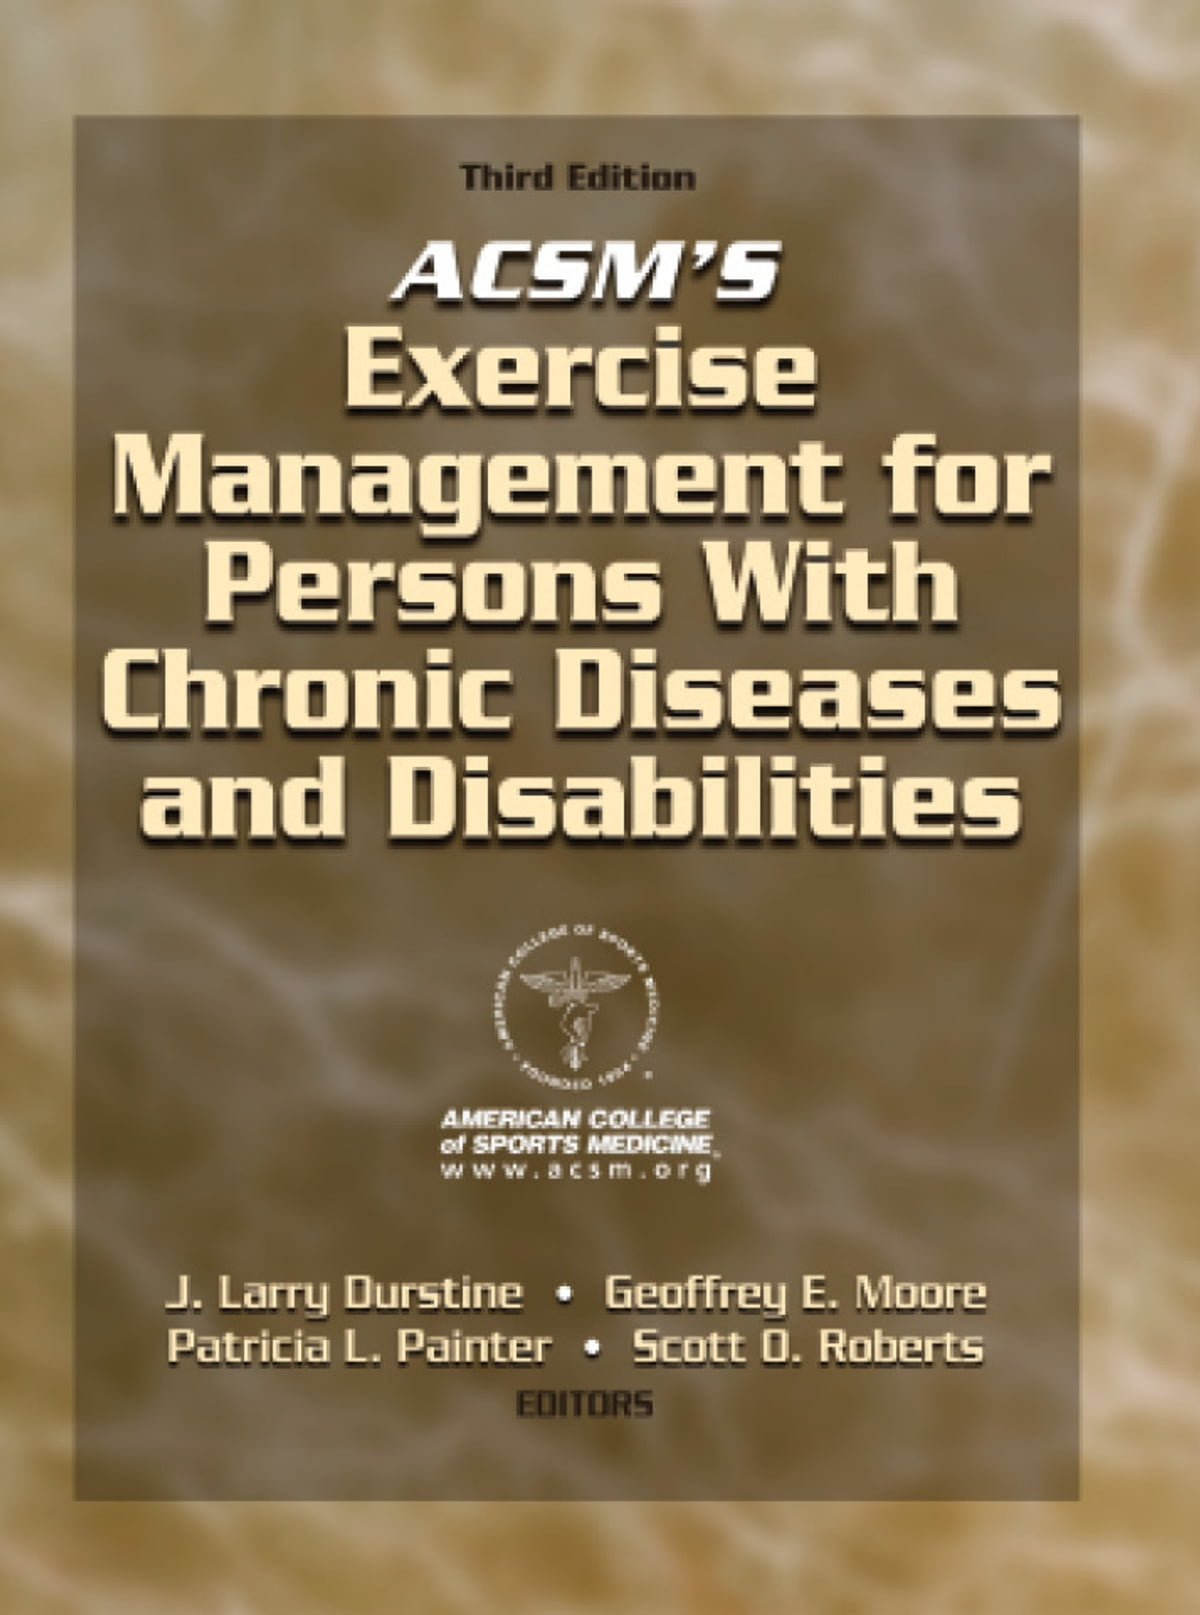 Acsms exercise management for persons with chronic diseases acsms exercise management for persons with chronic diseases disabilities 3rd edition ebook by american college of sports medicine 9781450445207 fandeluxe Document